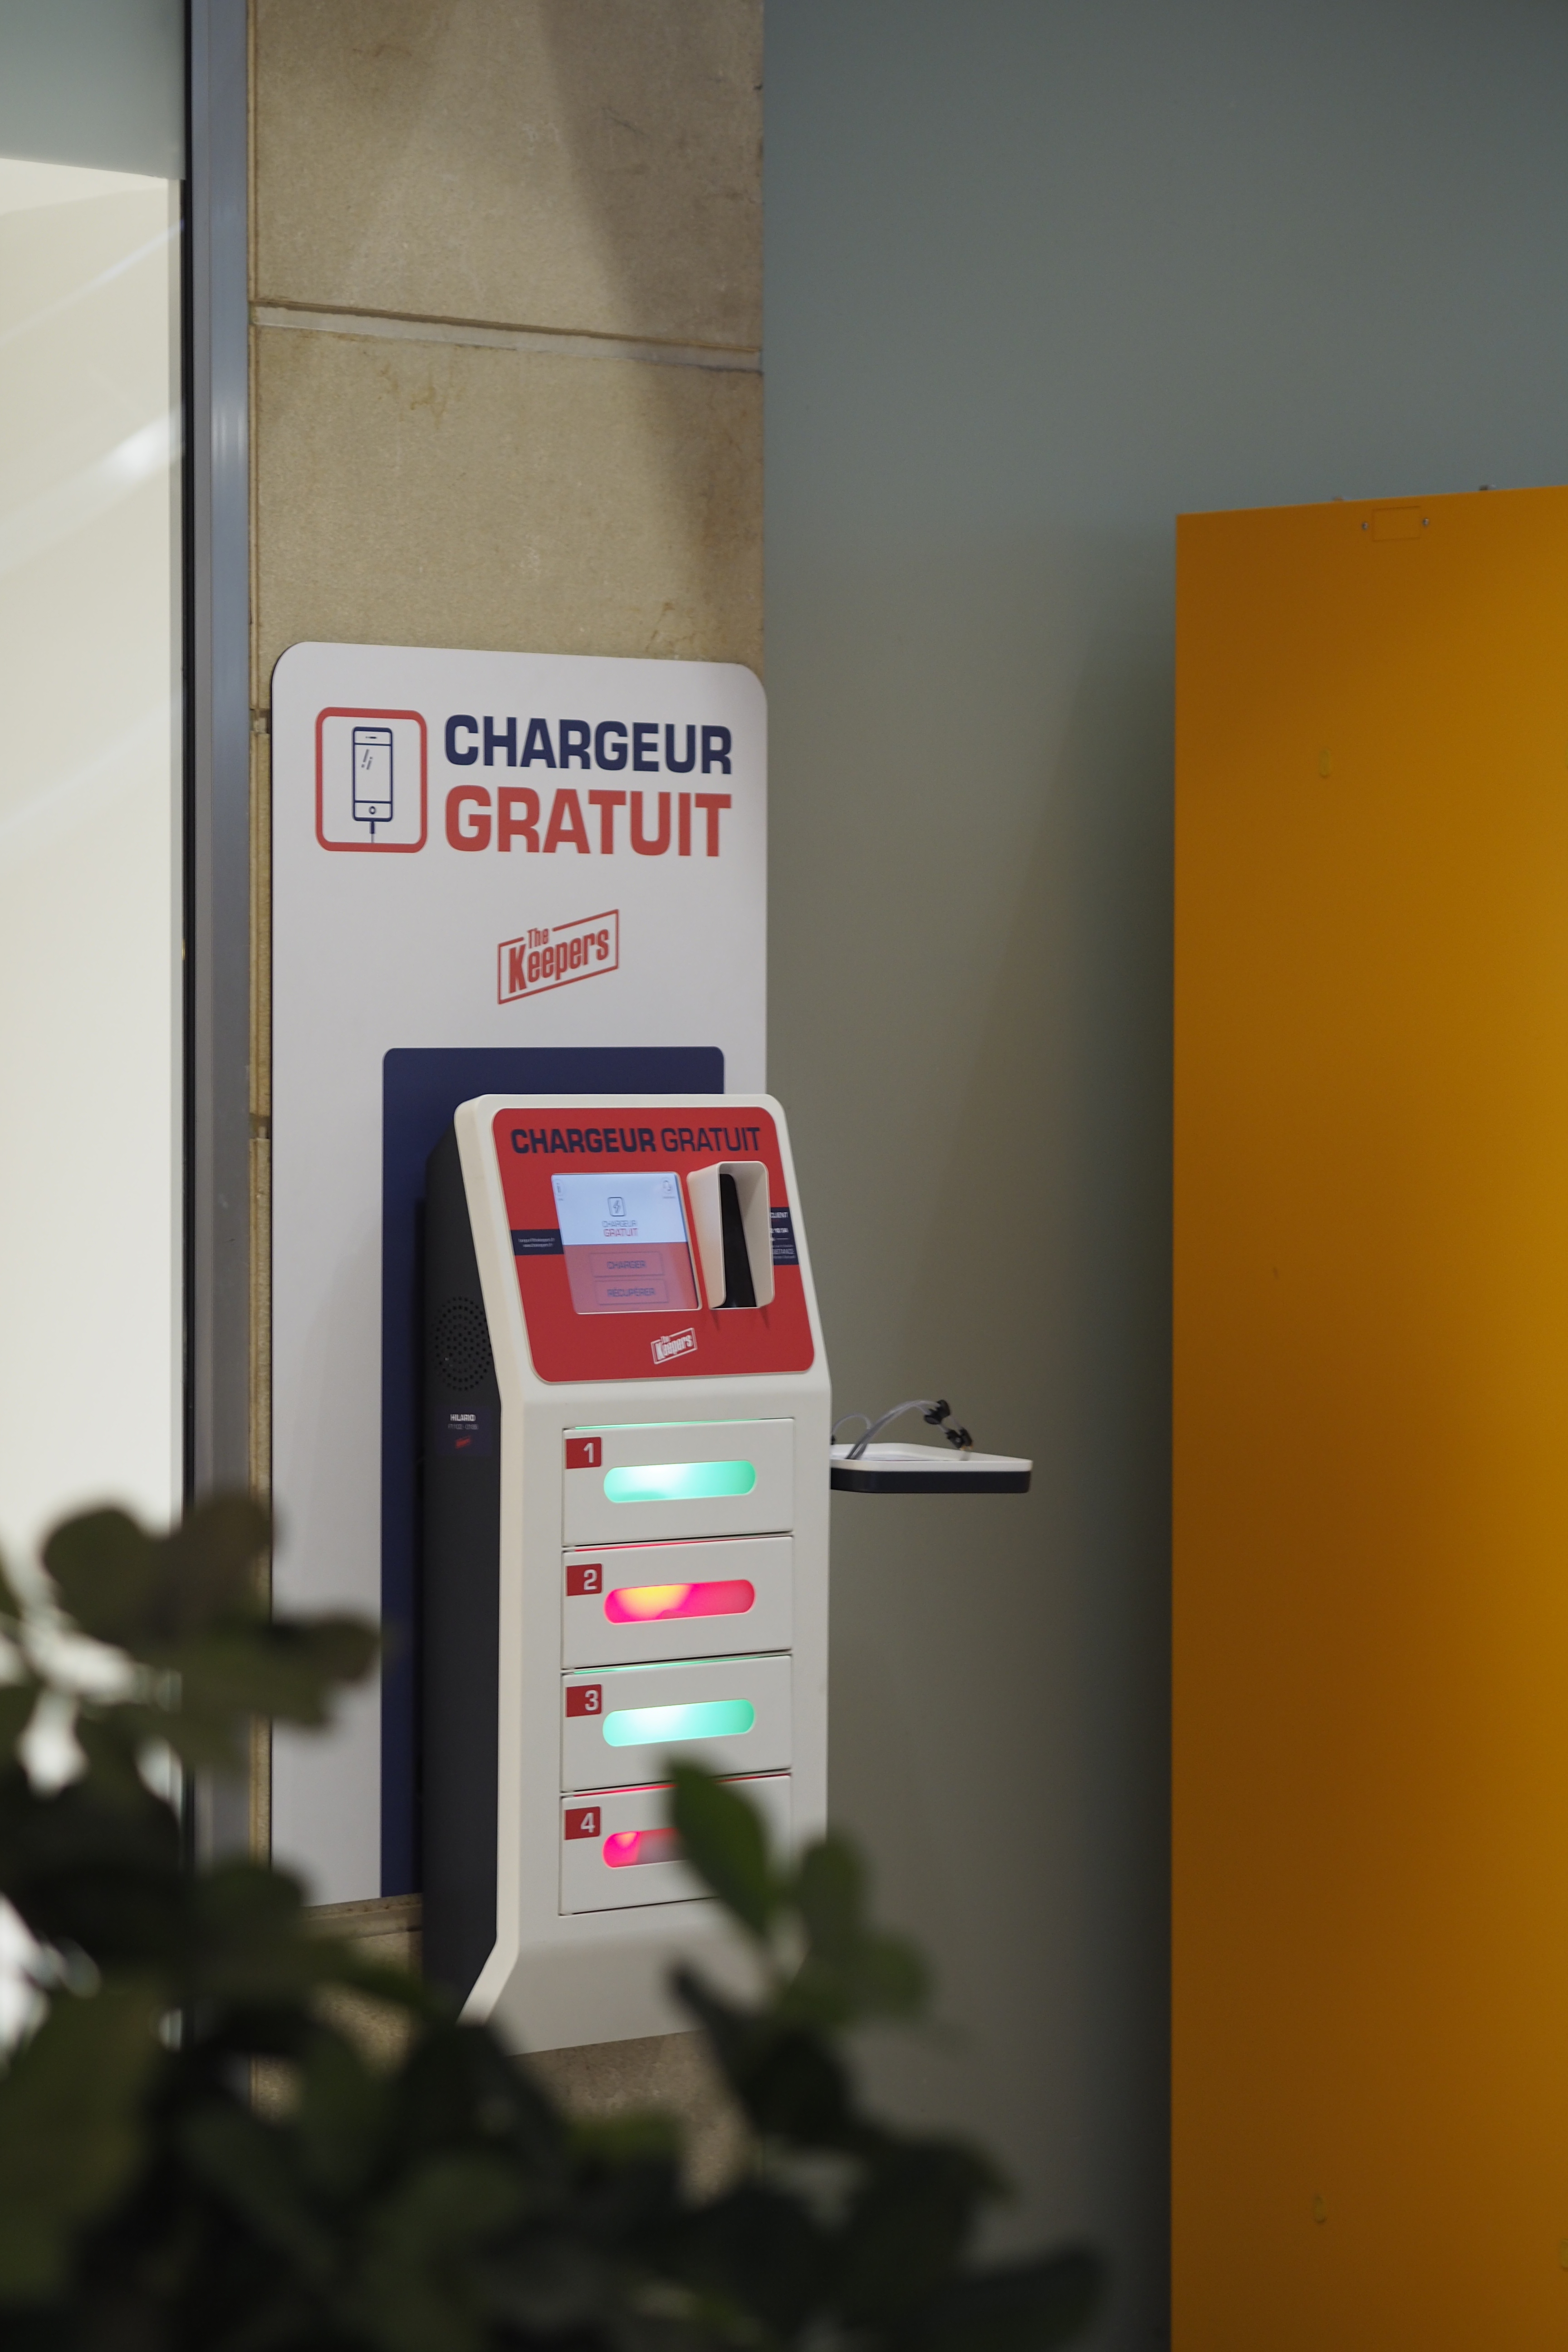 Station de recharge de smartphone simple et autonome